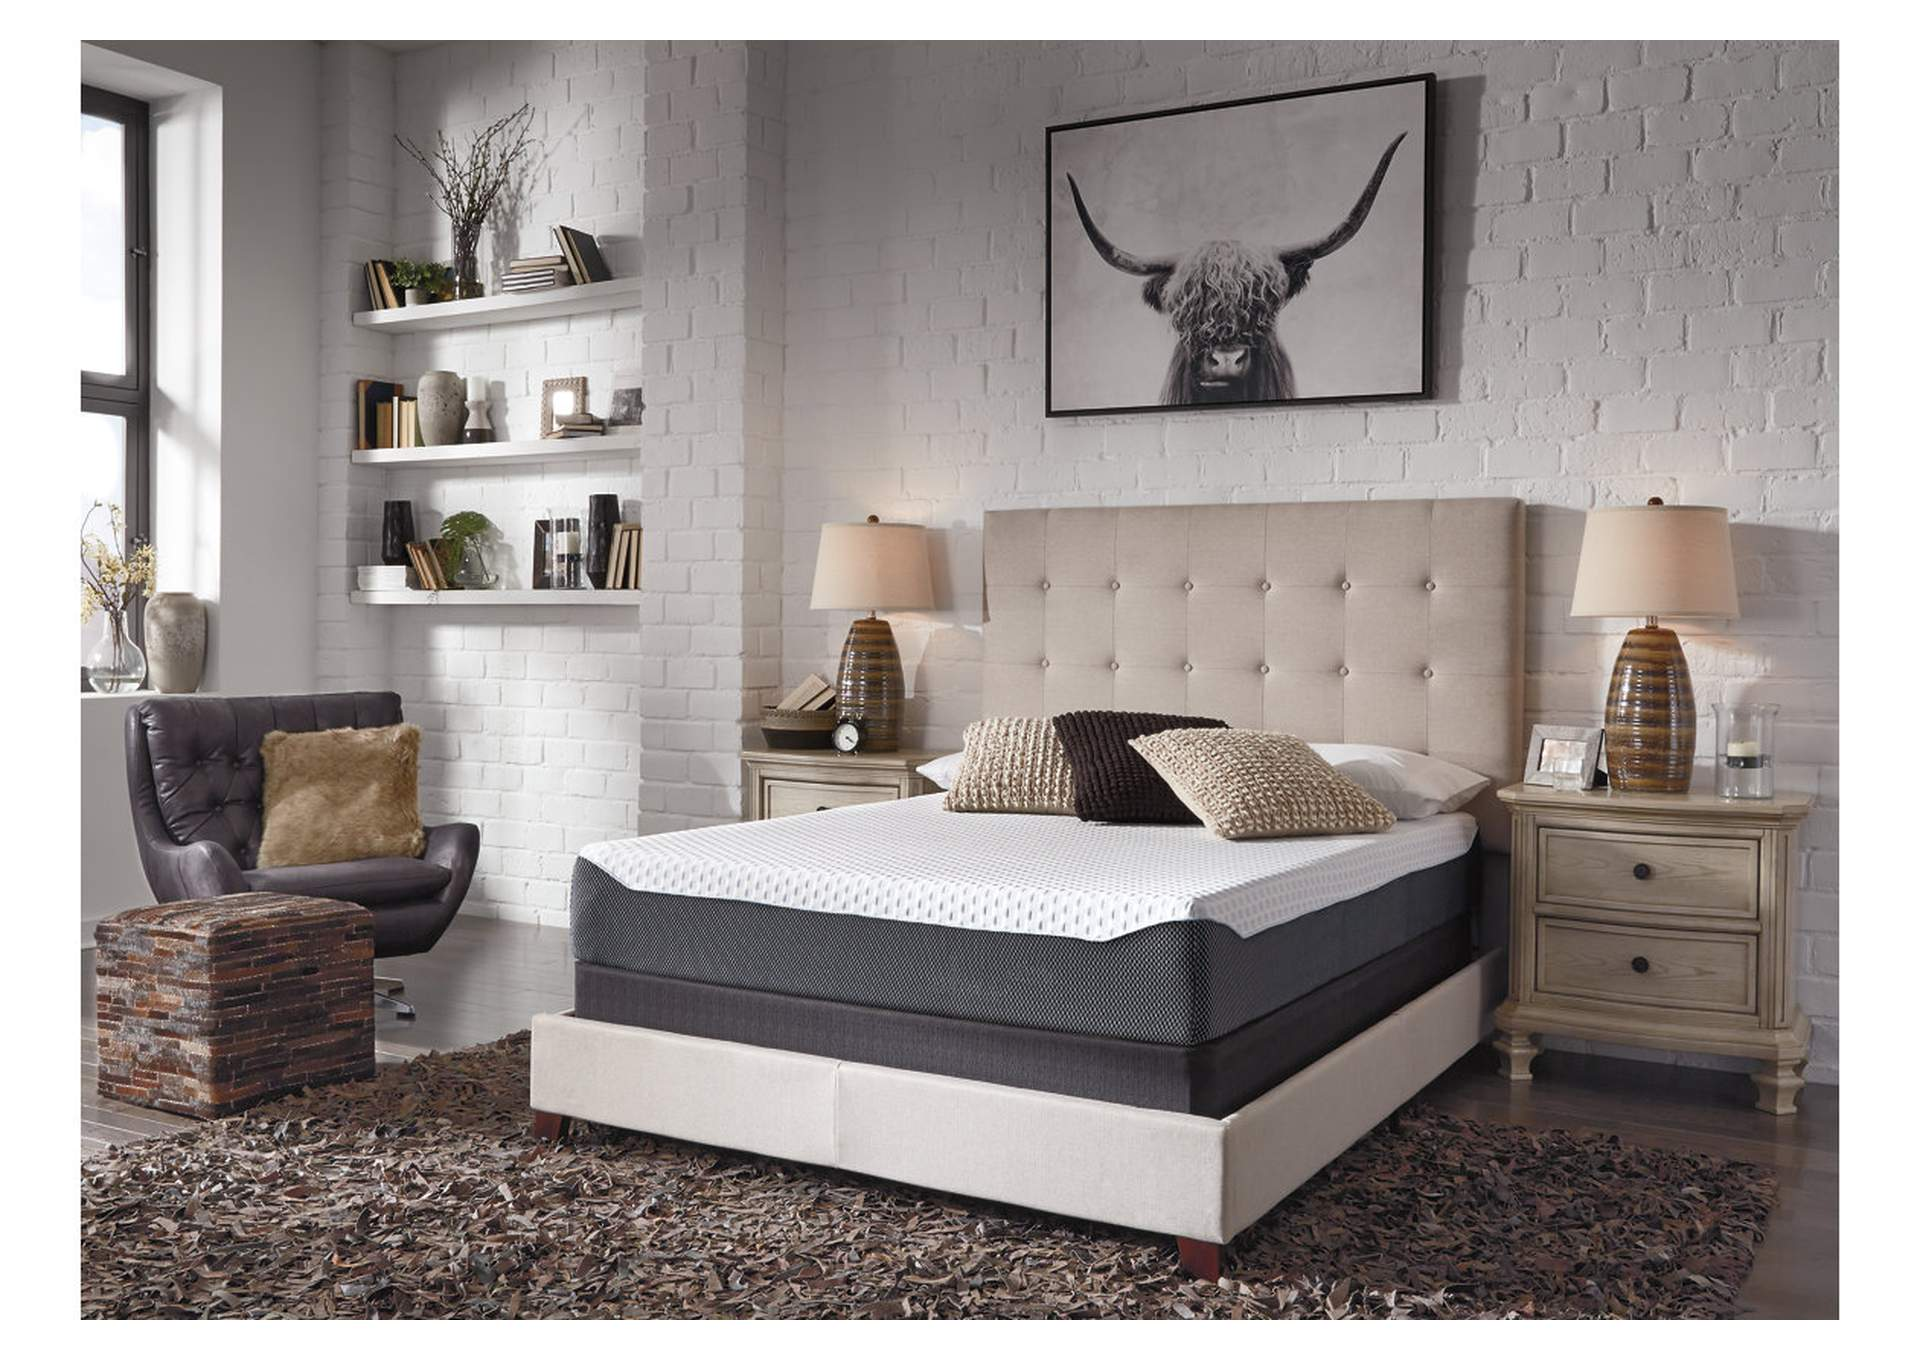 10 Inch Chime Elite California King Memory Foam Mattress in a box,Sierra Sleep by Ashley